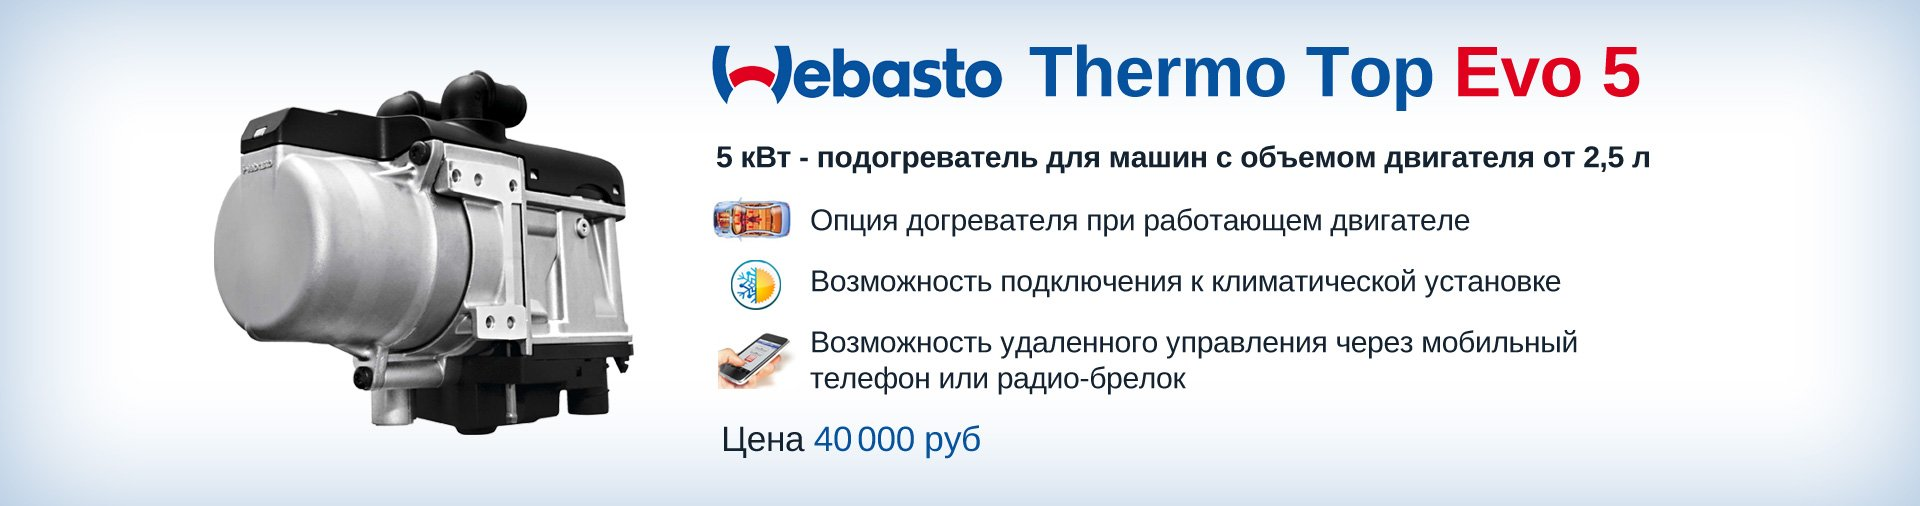 Webasto Thermo Top Evo 5